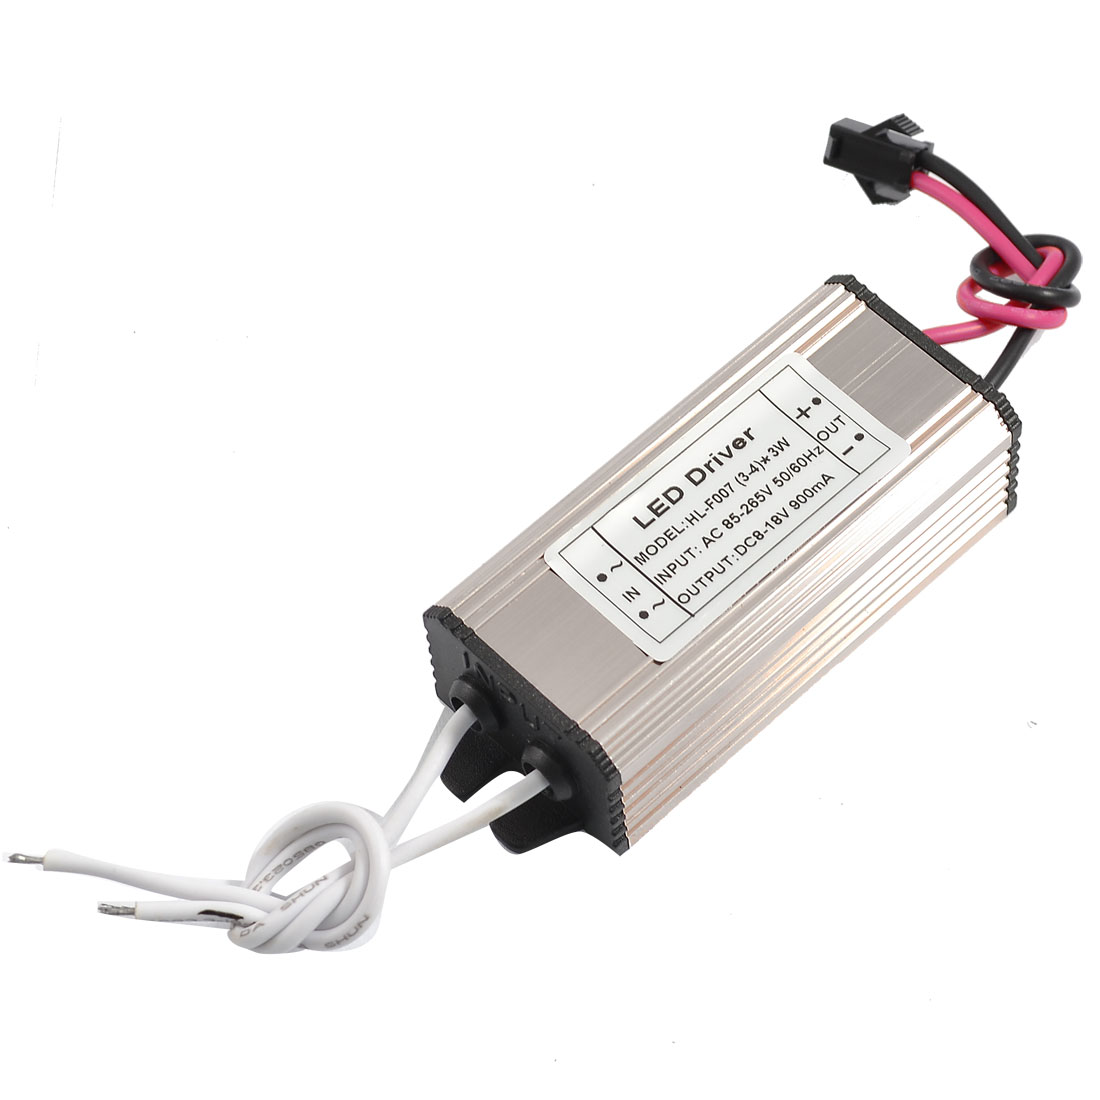 AC 110-220V DC 8-18V 900mA Water Resistant Power Supply Driver for 3-4x3W LED Light